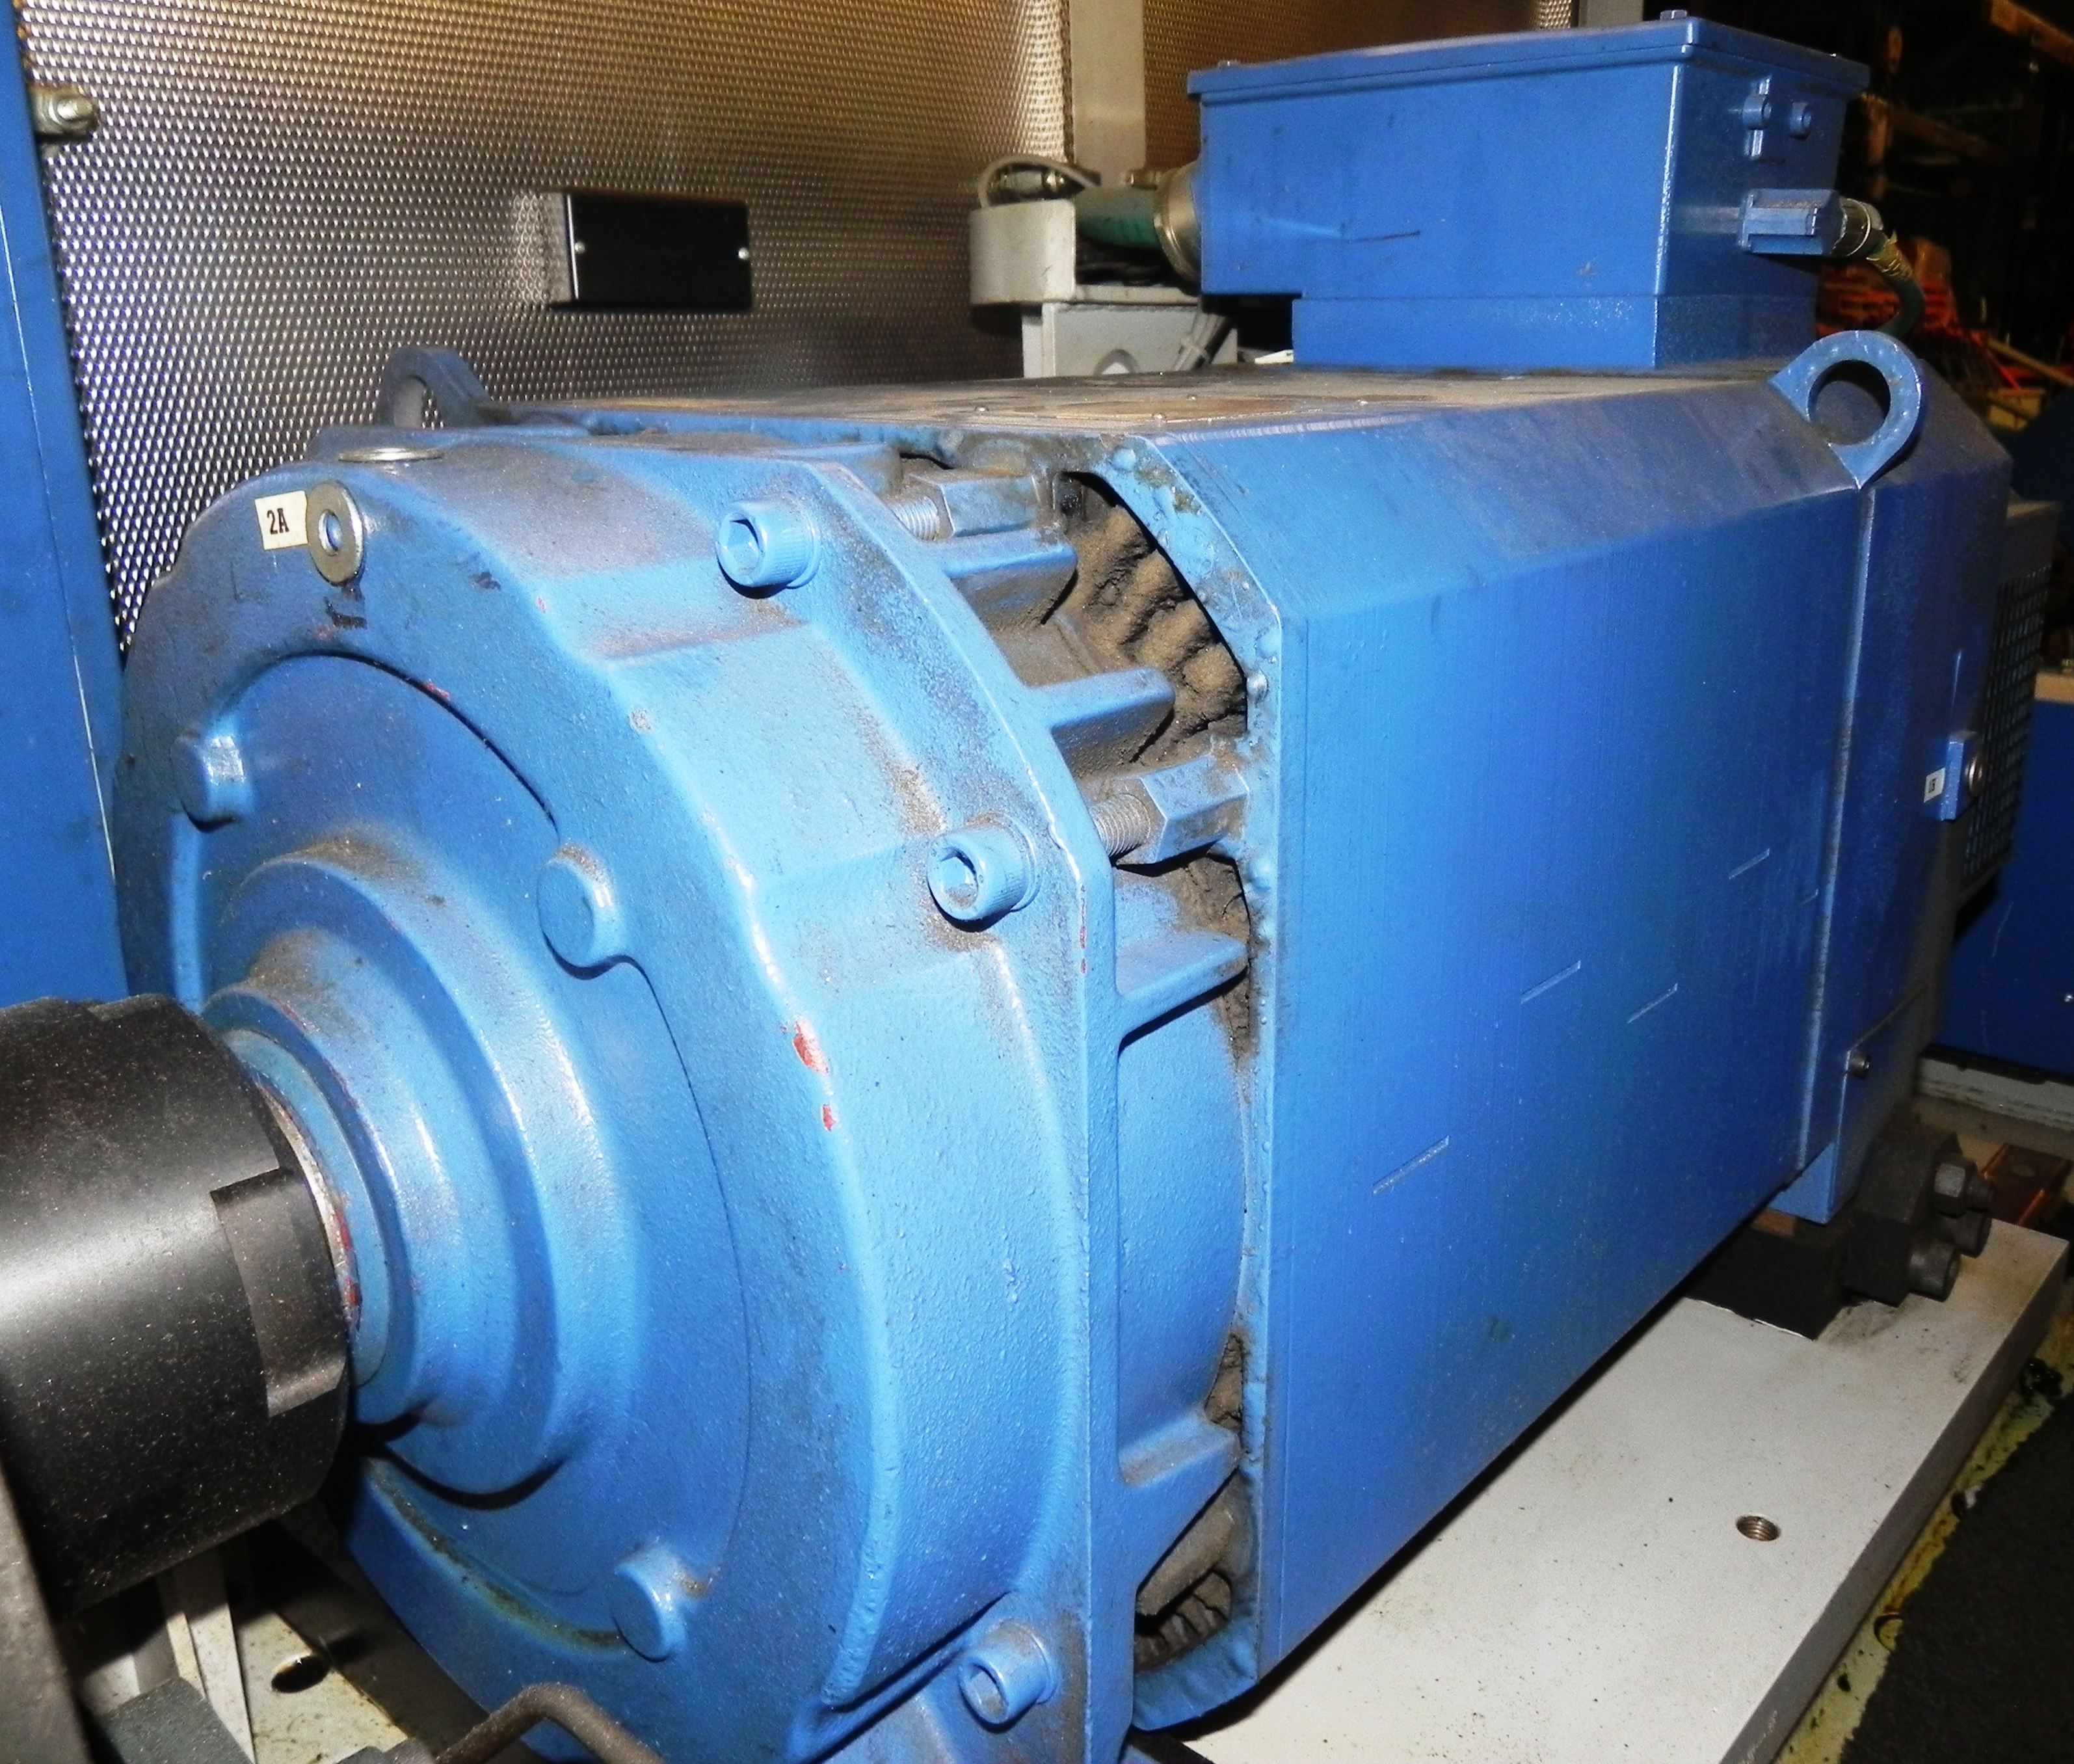 Lot 78 - Siemens 43KW Servo Motor 1PH7186-3NT00-0AA0